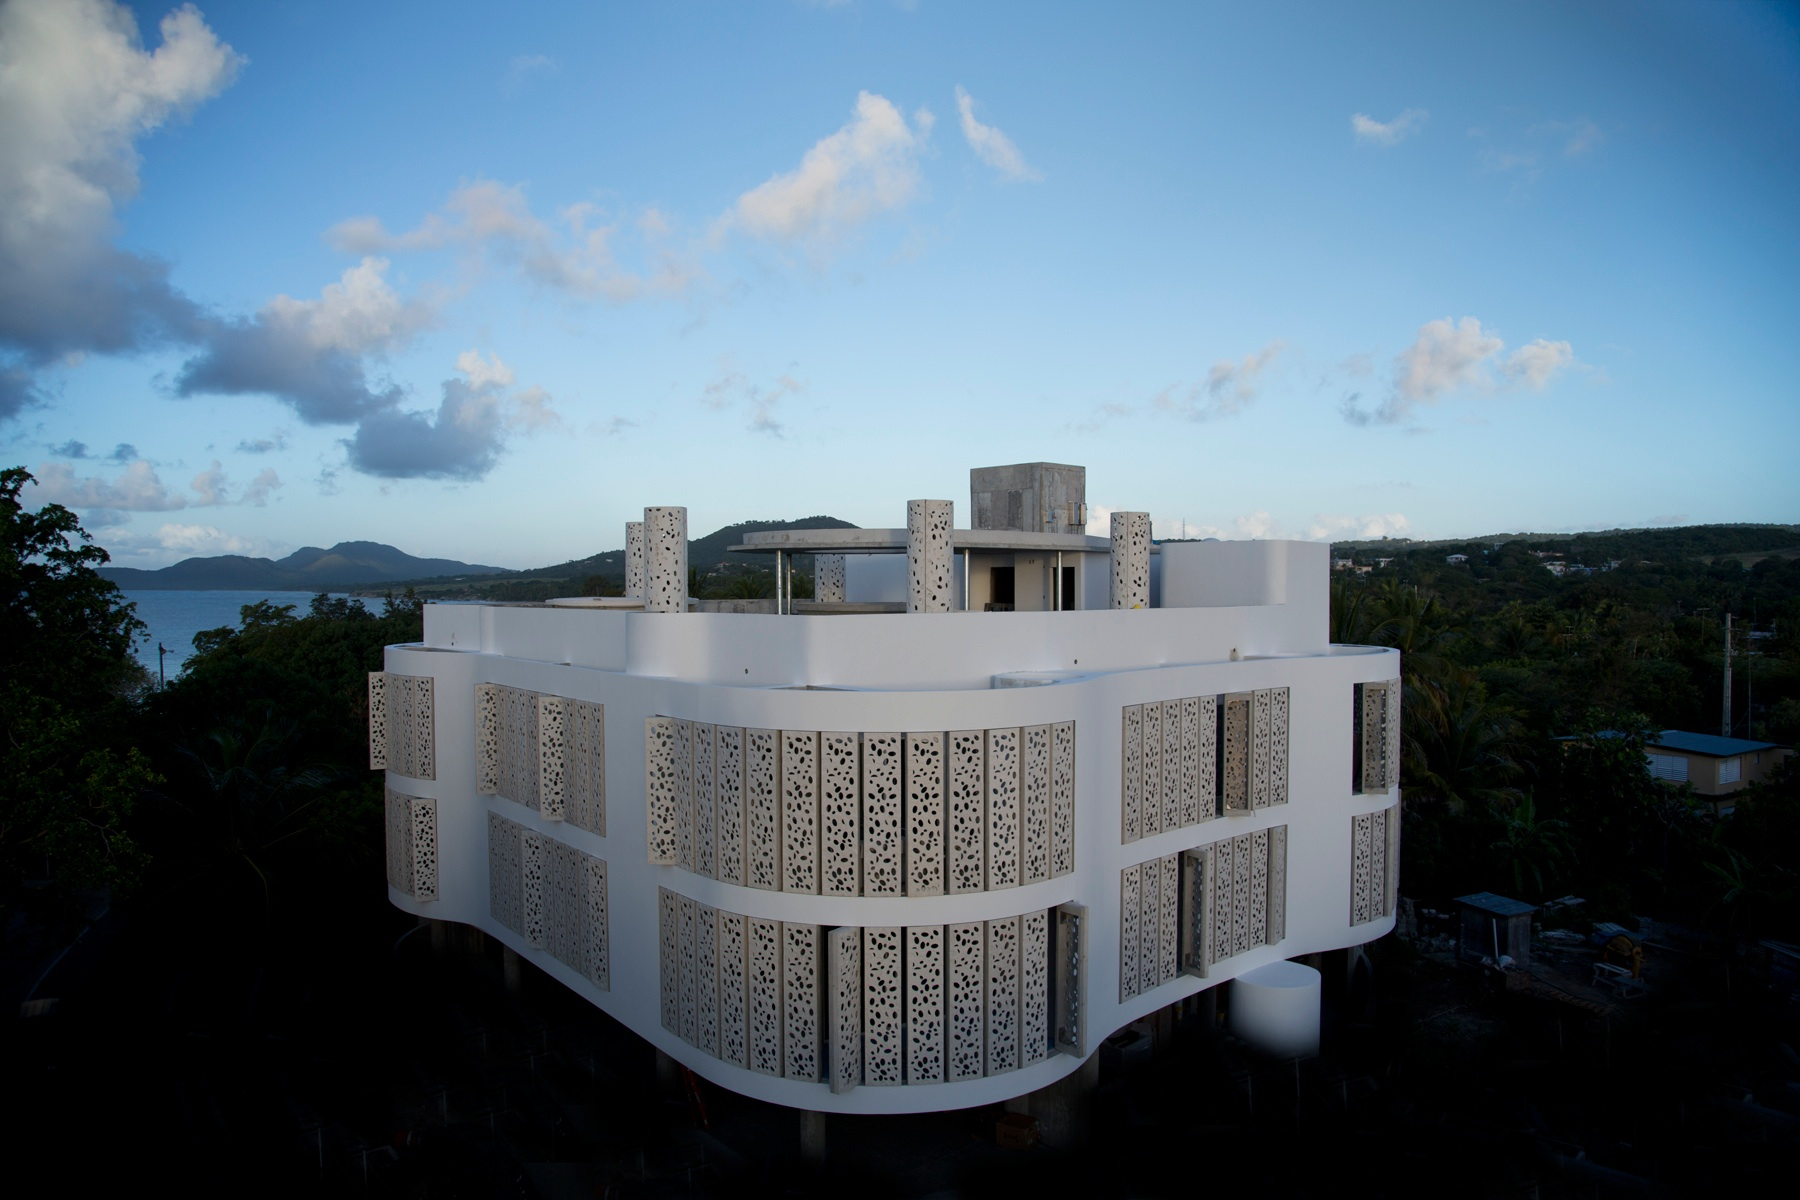 El Blok, Vieques, Puerto Rico Located on the compact 135 sq km Puerto Rican island of Vieques, El Blok is an intimate 22-room eco-hotel designed by local firm Fuster + Partners. They have not only harnessed thermal and solar power to generate electricity and heat, but also made clever use of local materials to create coral-inspired perforated panels that allow light and air to filter naturally through the building. Inside, most of the furniture is made locally, such as the almond tree bar and the reclaimed mahogany retro chairs, while a wild collection of coconut fibre sculptures by San Juan-based artists Jamie and Javier Suarez hold court. The Puerto Rican theme continues through to the hotel's restaurant, which refocuses seating by the bar to emulate the socialising often found in a town square. Helmed by chef José Enriques, El Blok serves up elevated renditions of traditional dishes to complete the experience.                                                              58 Calle Flamboyan, Esperanza, Vieques; Tel: 1.787 741 6020; elblok.com; Rates from $215